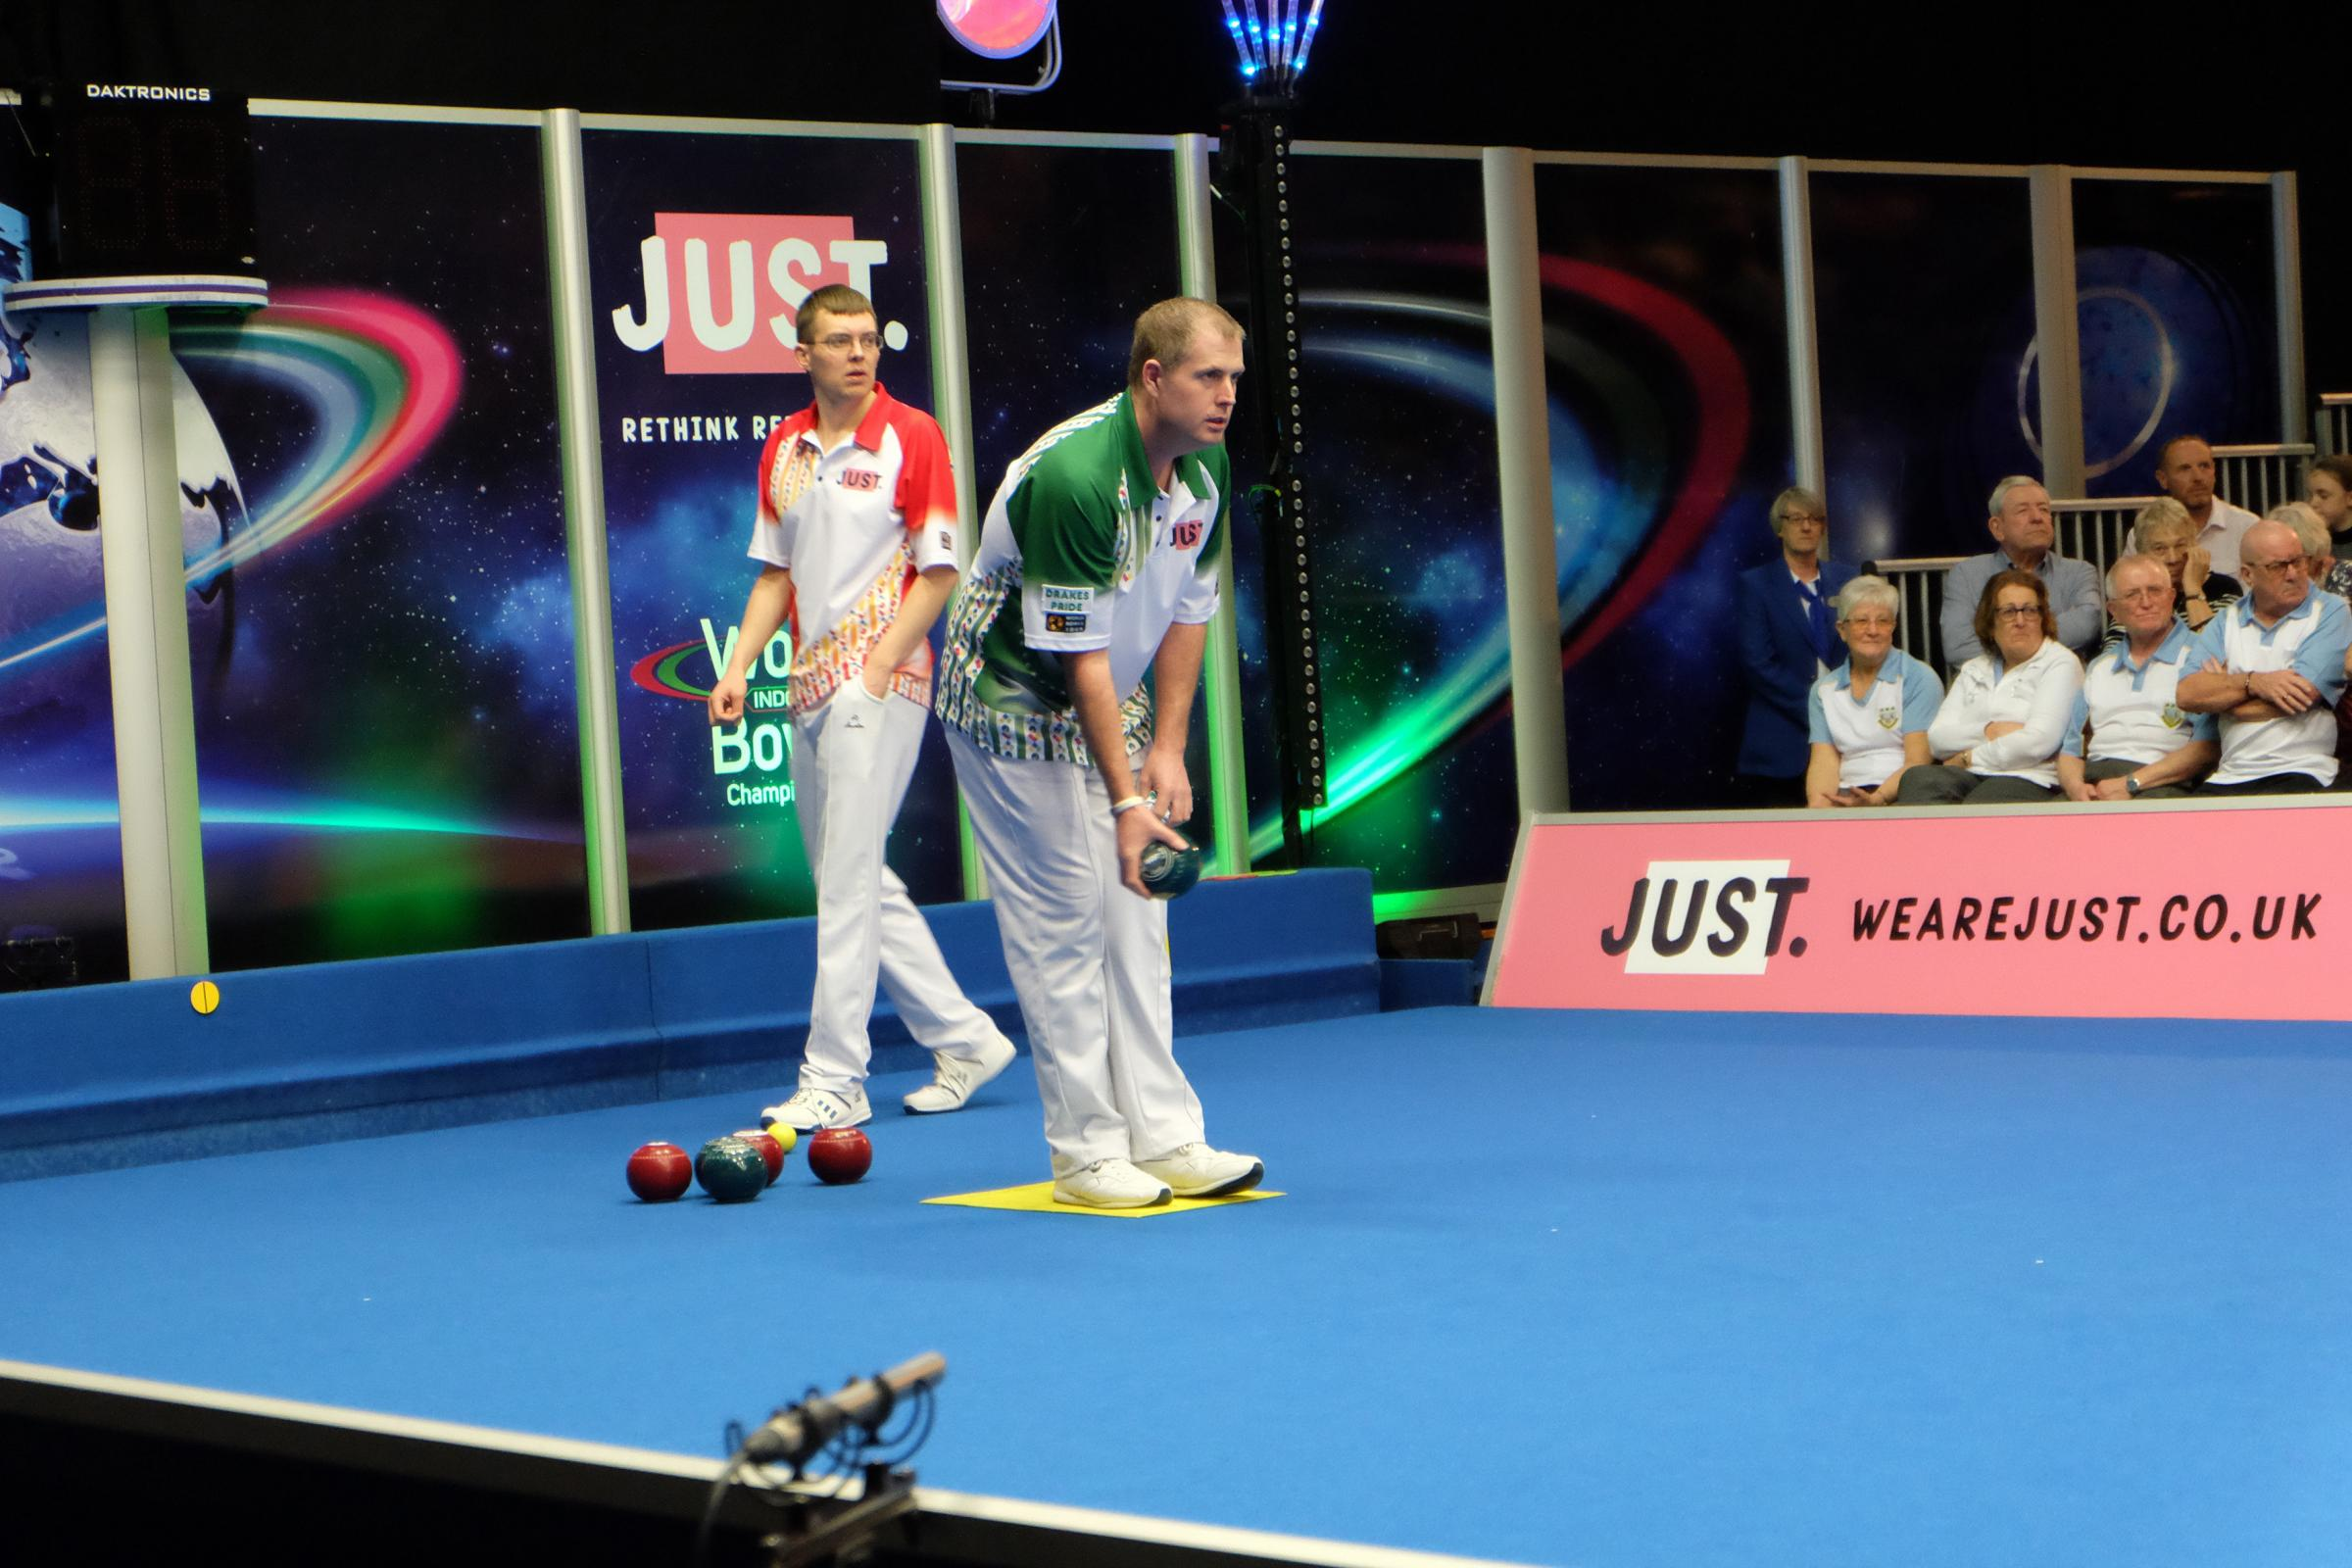 FINAL HURDLE: Rob Paxton finished runner-up in the World Indoor Championships singles competition. Pic: Dominic Picksley